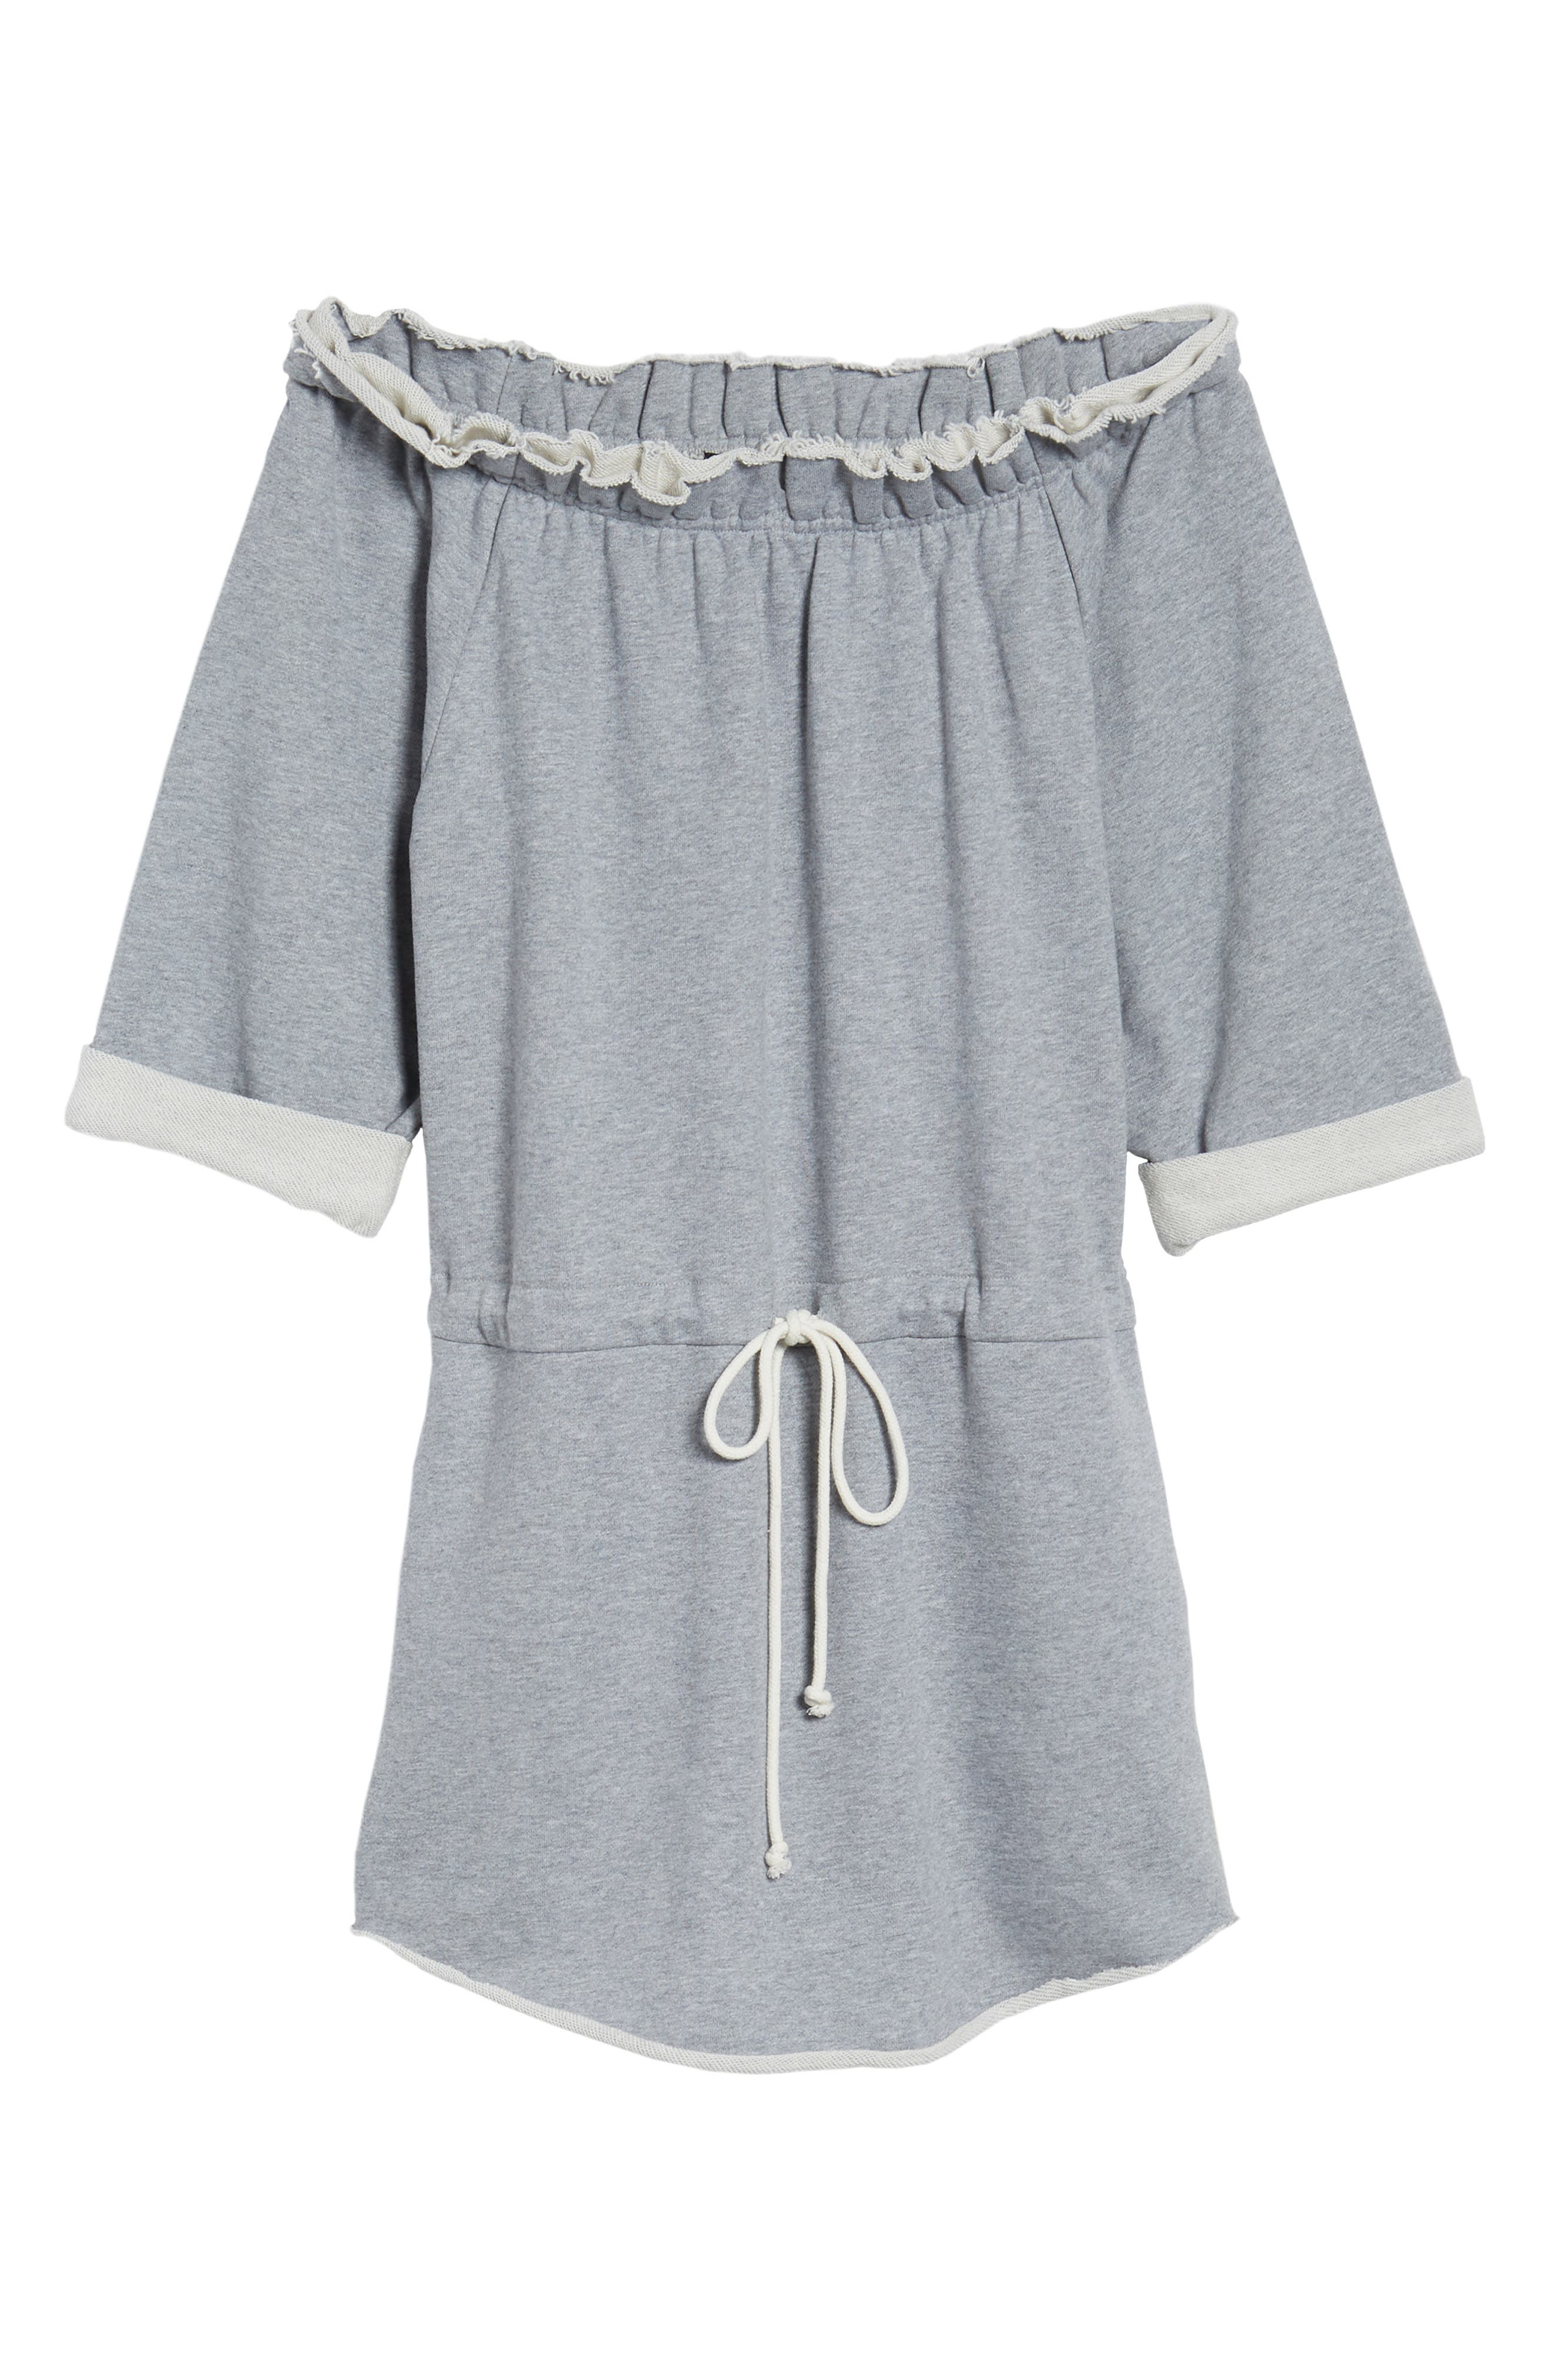 Off the Shoulder Dress,                             Alternate thumbnail 7, color,                             Heather Grey